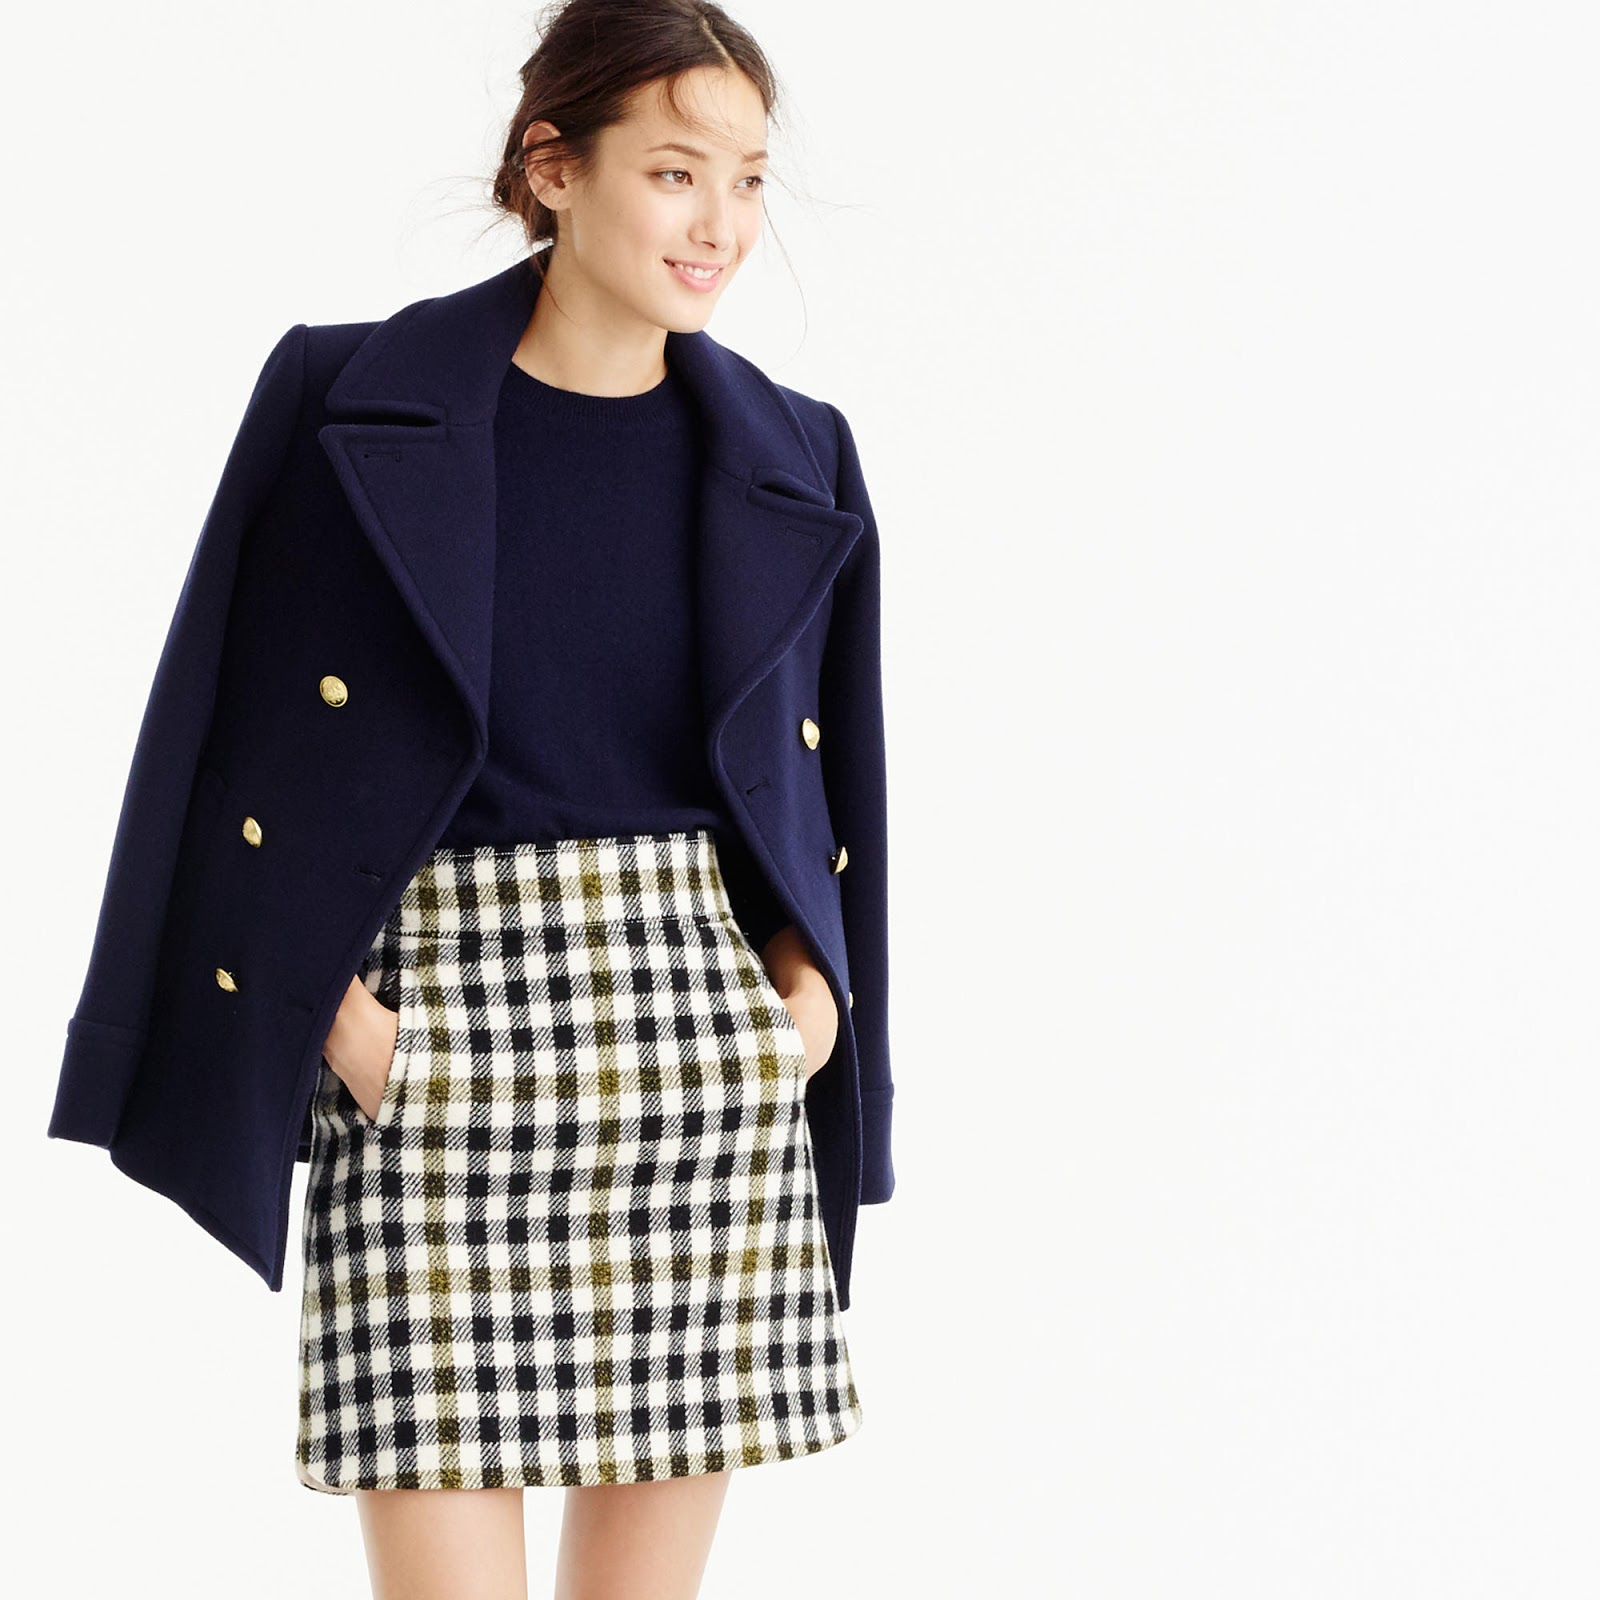 Looking to update your fall wardrobe? Start with J.Crew's latest arrivals